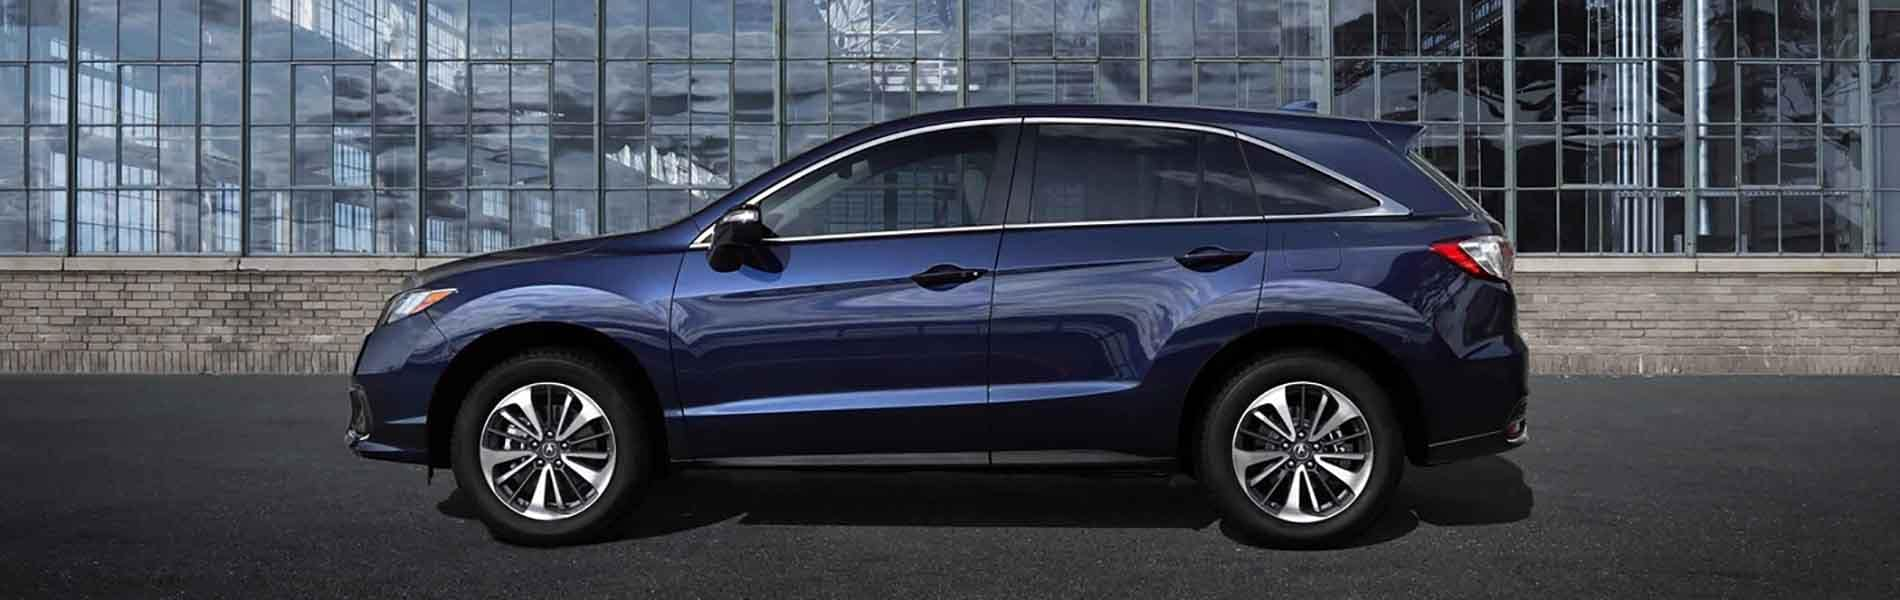 2018 Acura RDX Side Profile View